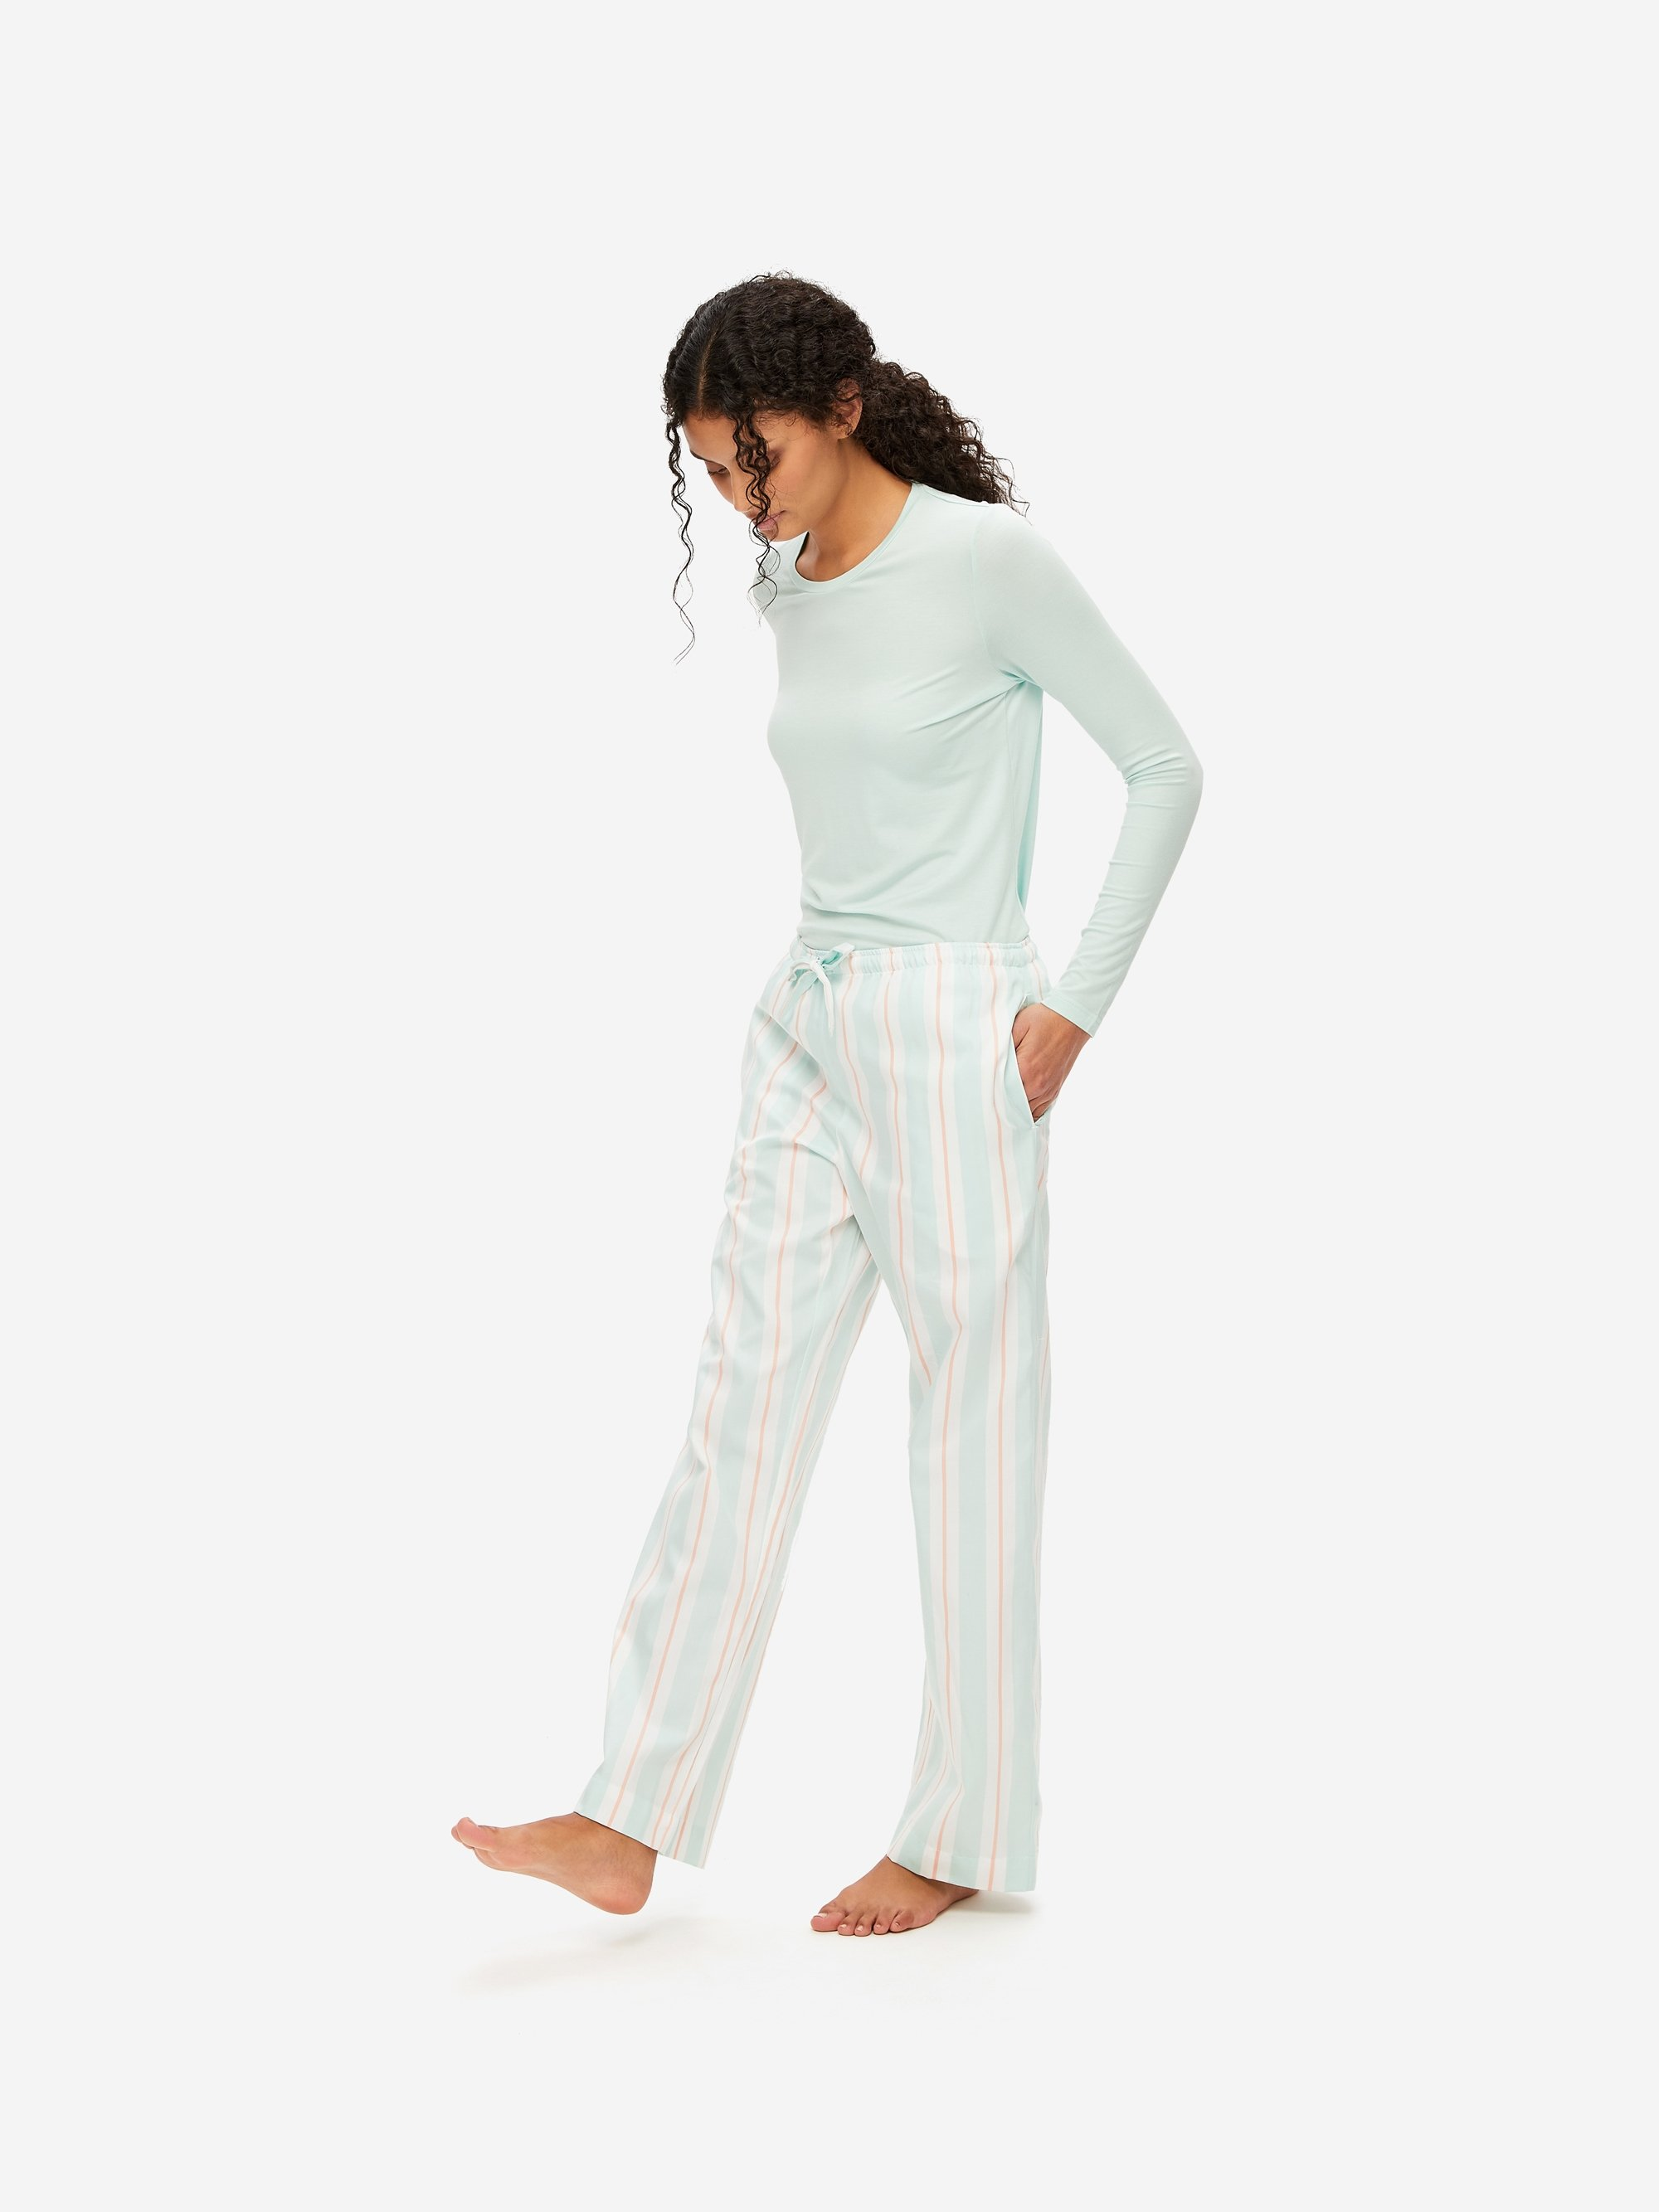 Women's Lounge Trousers Milly 9 Cotton Full Satin Stripe Mint